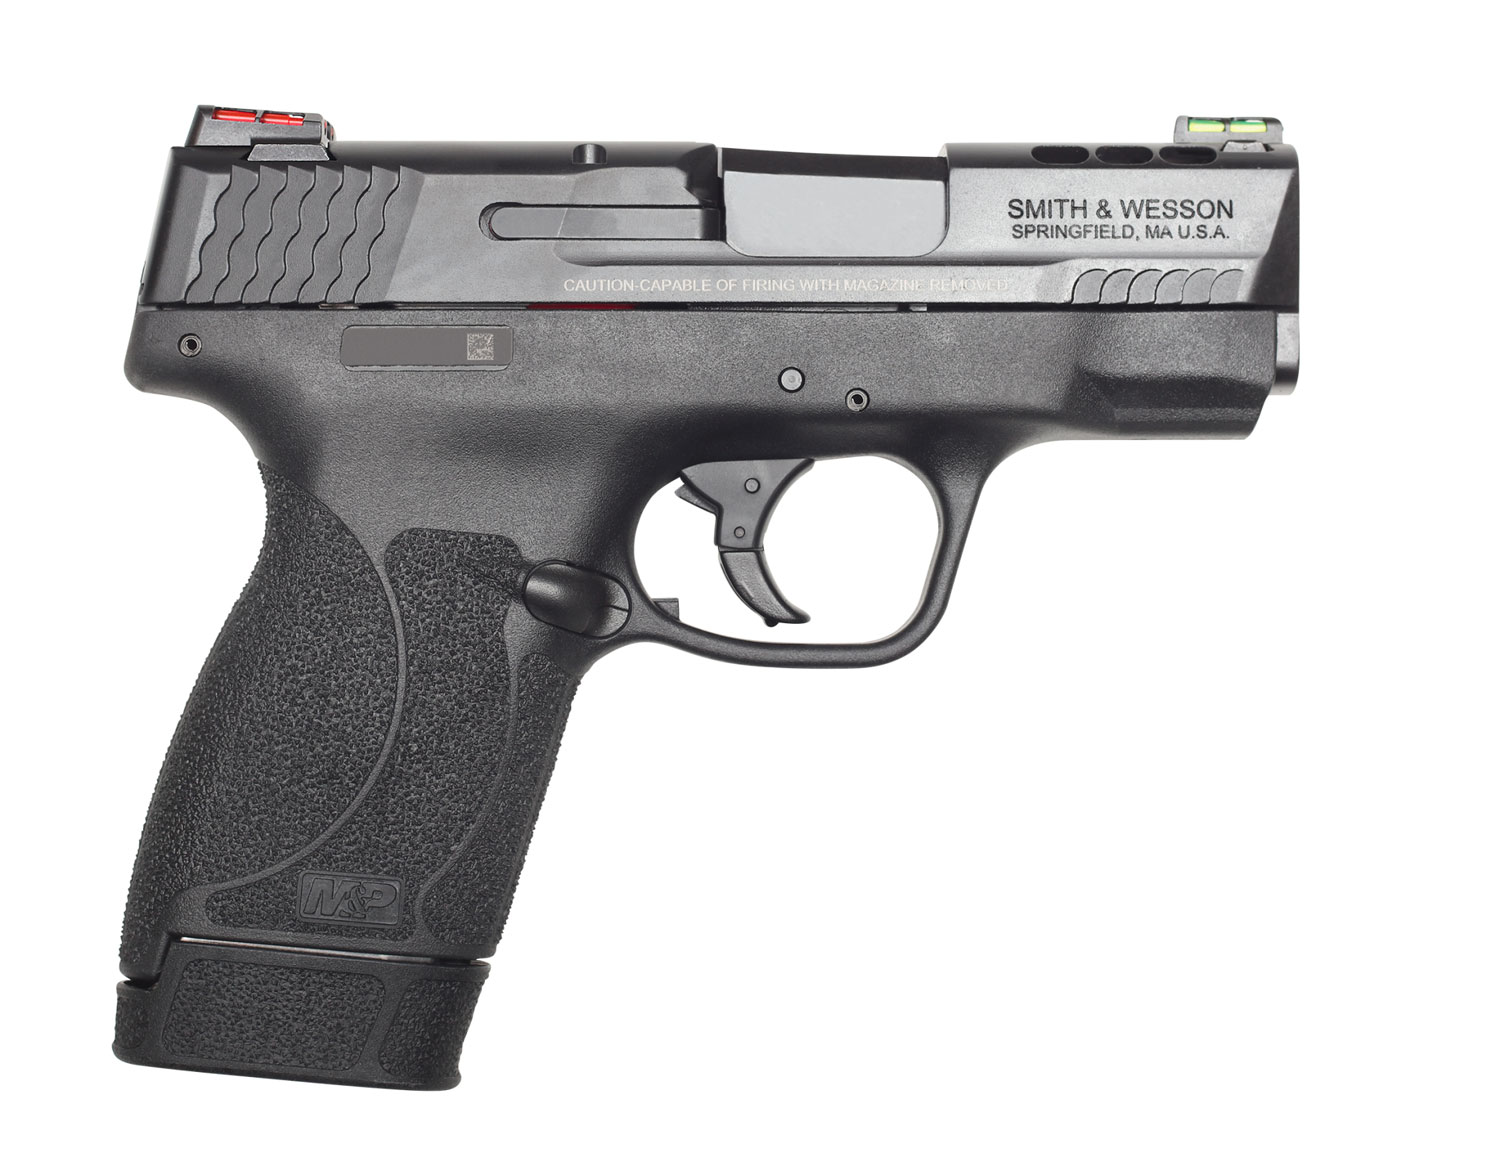 Smith & Wesson 12473 M&P Performance Center M2.0  45 ACP Double 3.3